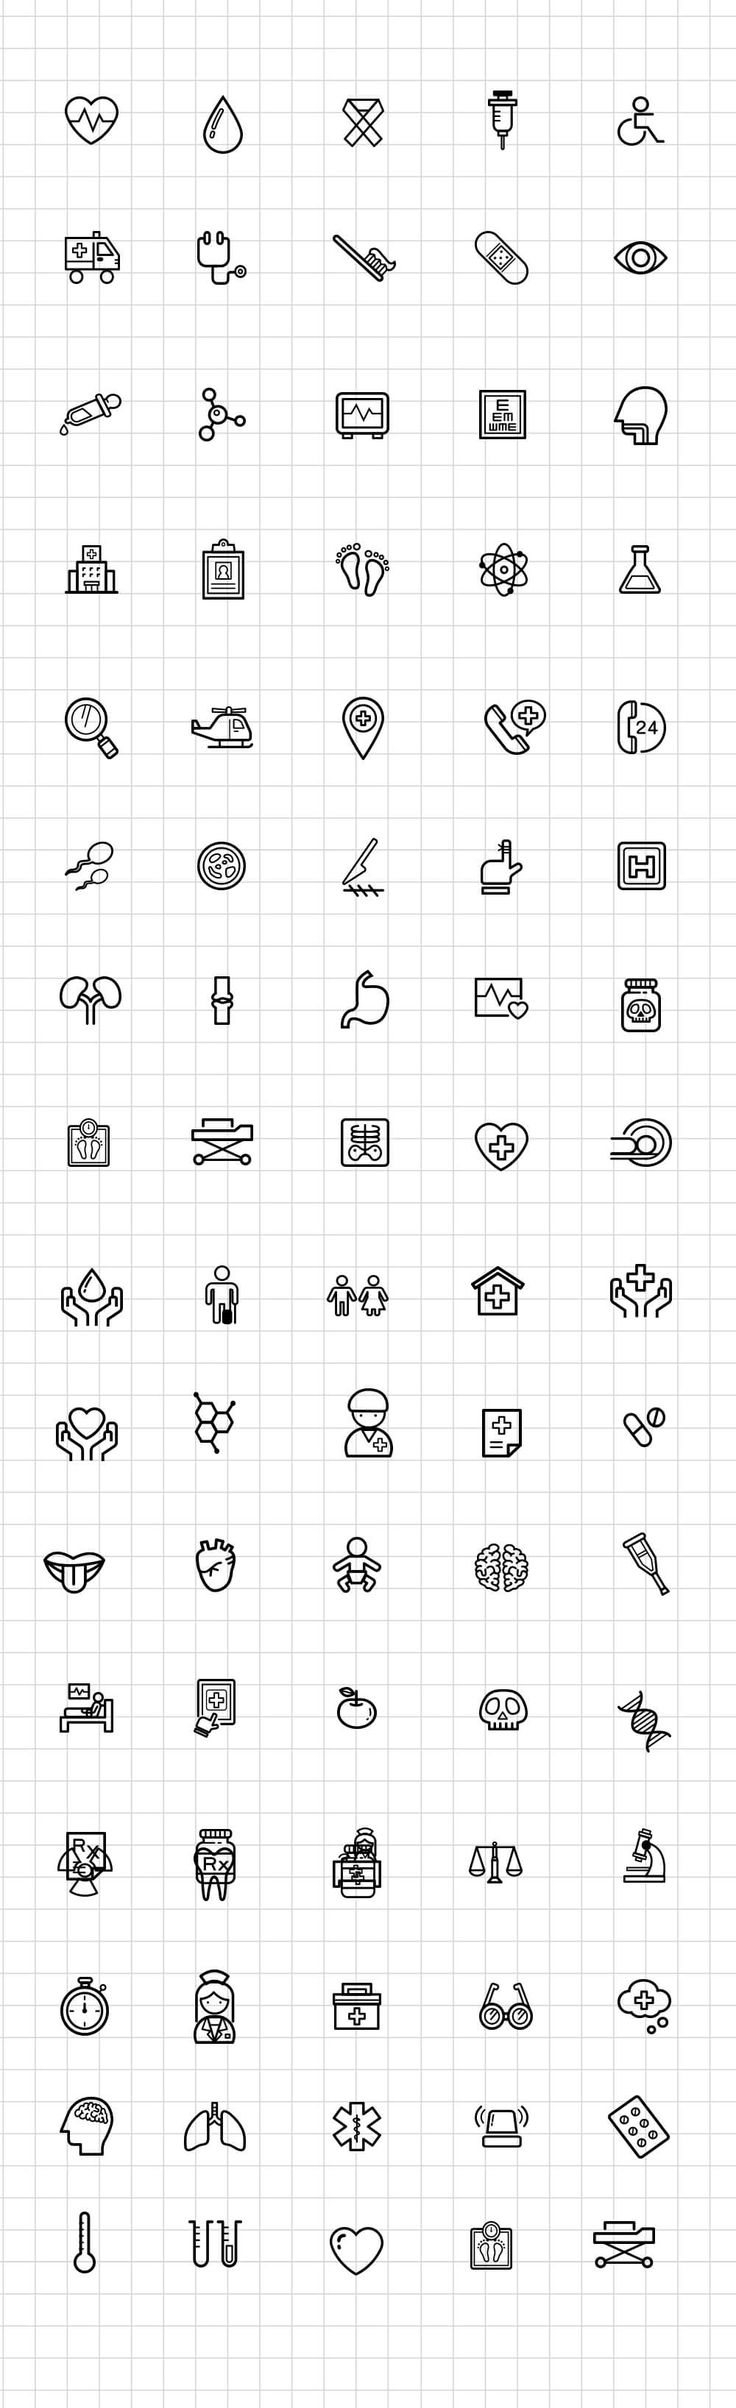 There's all kind of icon freebies online. I'm not a designer and all these freebies have benefited me greatly. I can just search a little harder to find the design I need. Here we have a delicate set of rare icons to share - 80+ Medical and Science Outline Icon Set Free PSD.